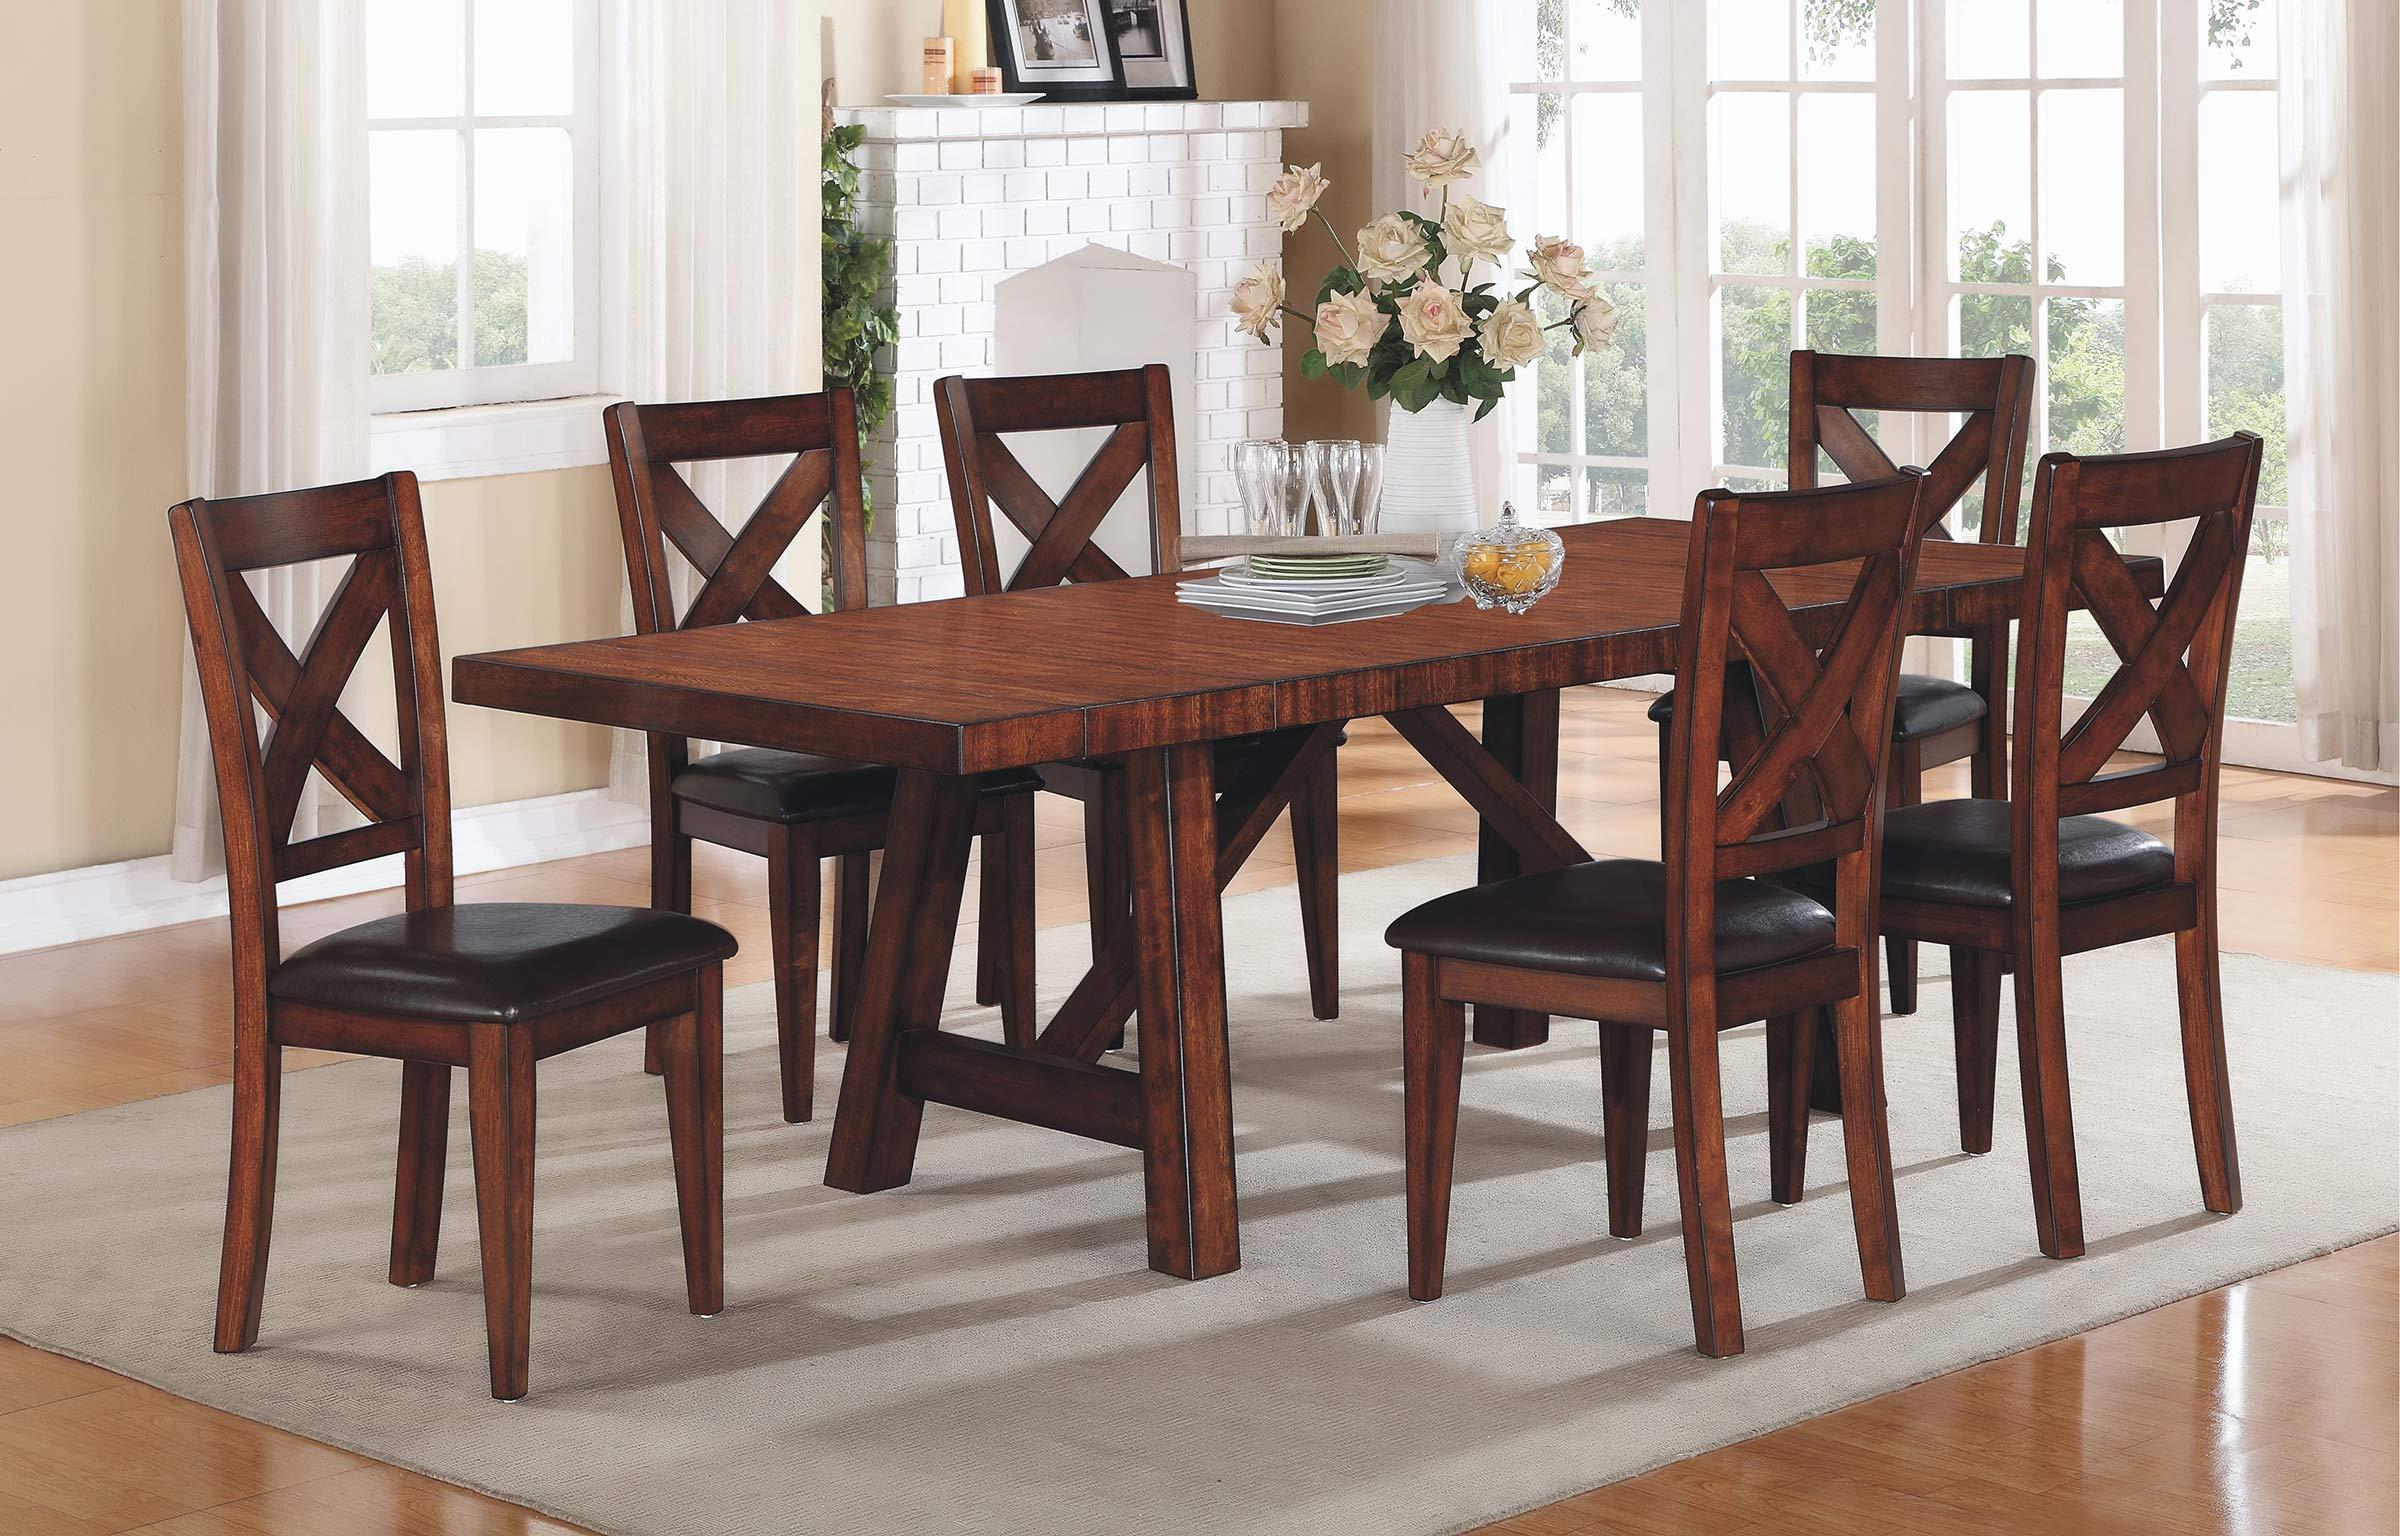 Winners ly Kingston Counter Height Trestle Table with Two Leaves